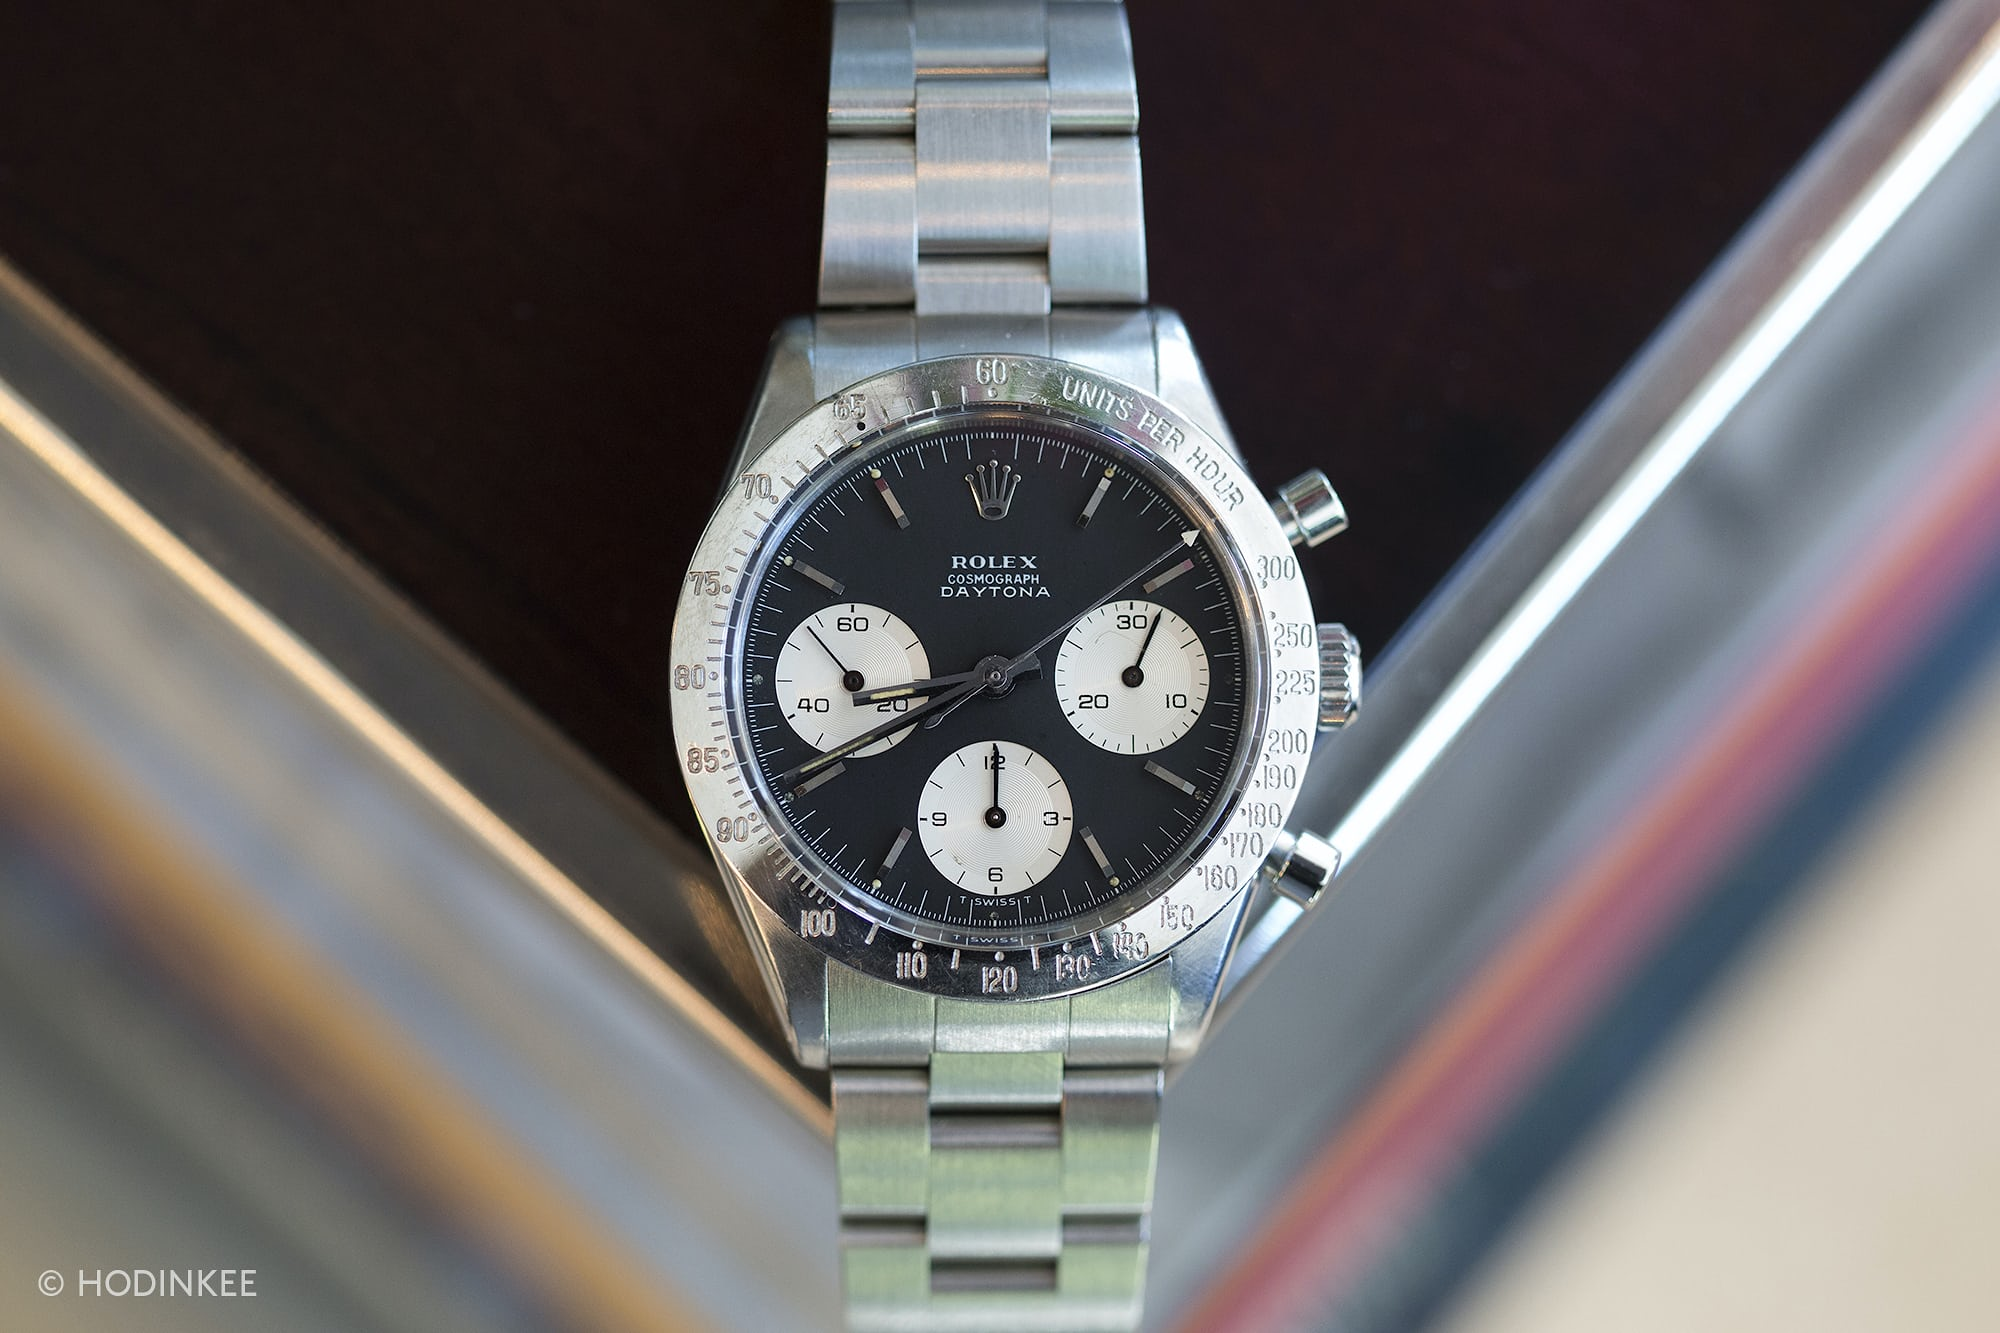 Rolex Daytona Reference 6239  Talking Watches: With John Edelman Talking Watches: With John Edelman  3H0A2774 copy